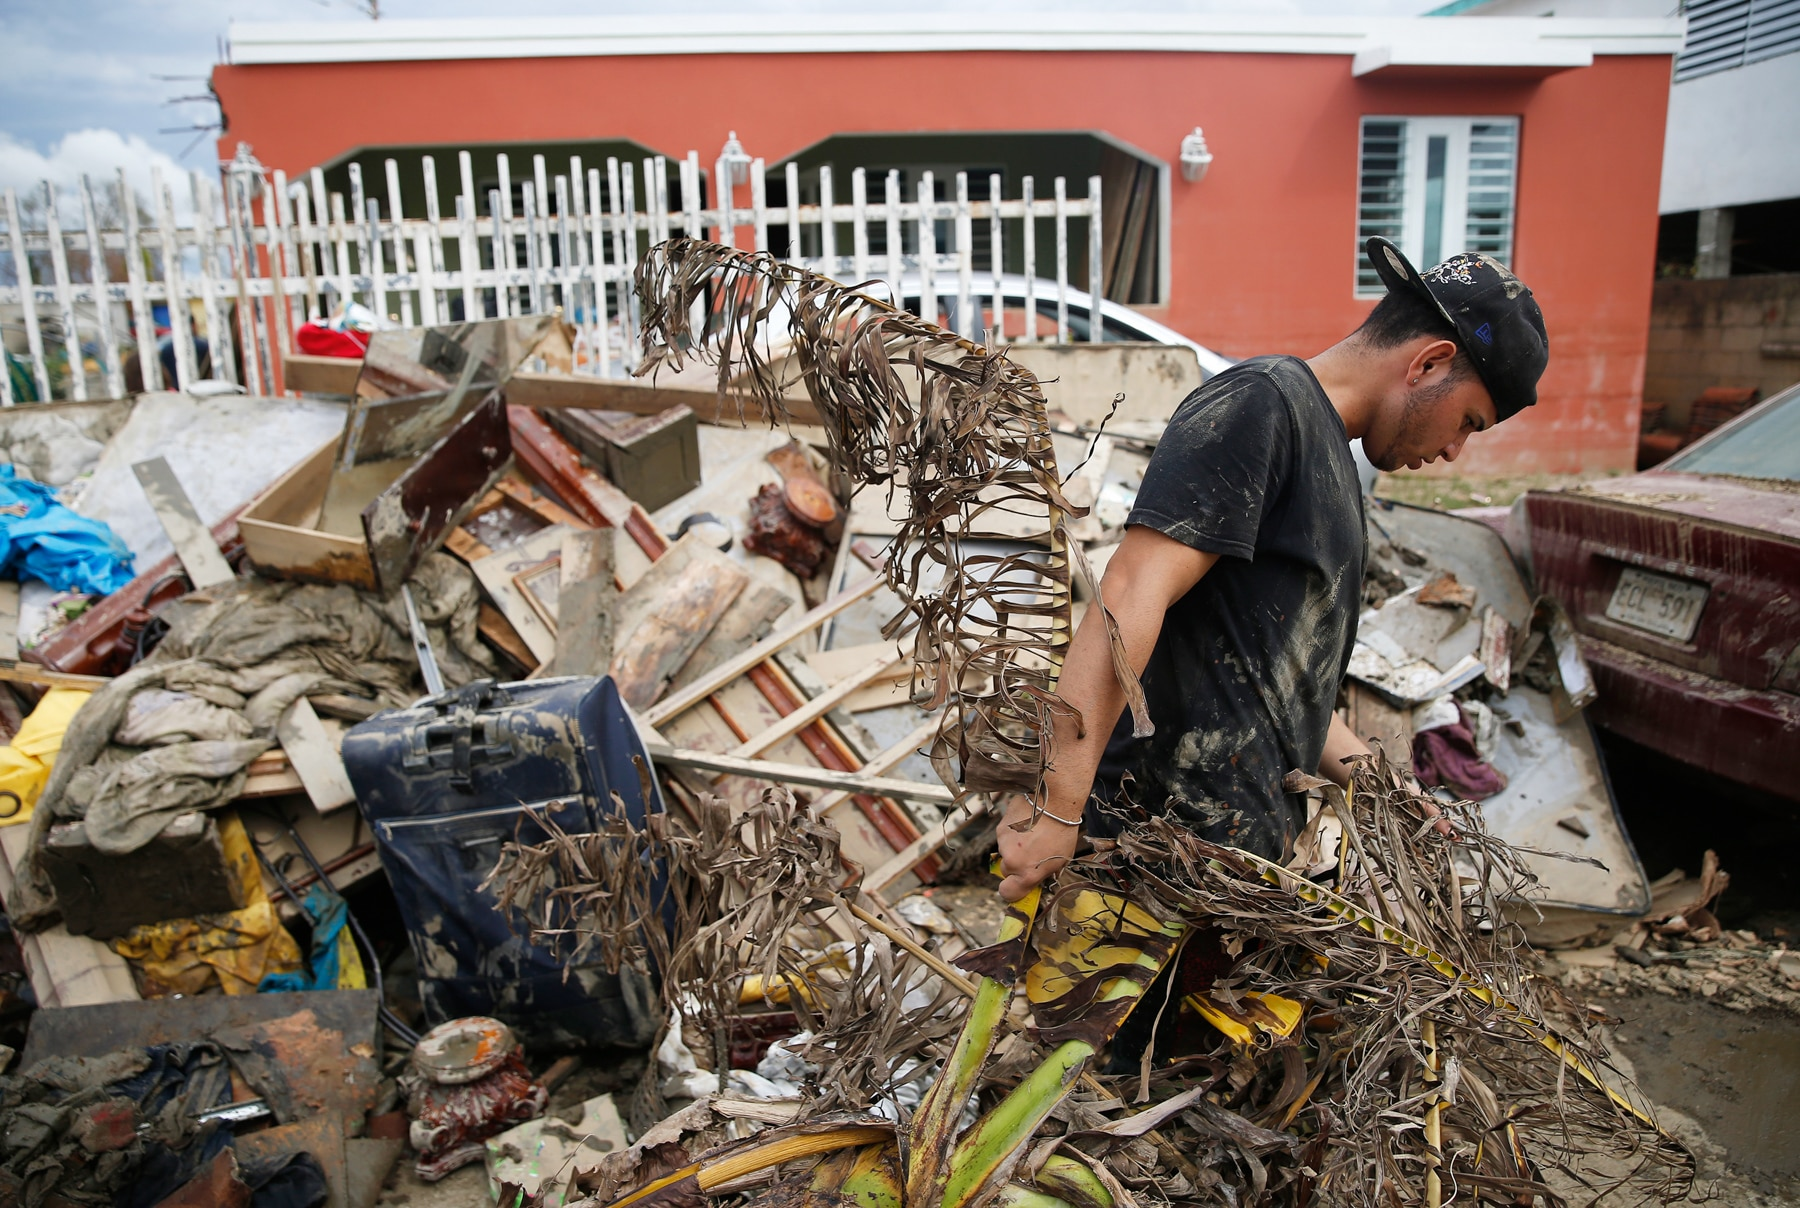 Man walking past pile of debris outside house in Puerto Rico (© Jessica Rinaldi/The Boston Globe via Getty Images)